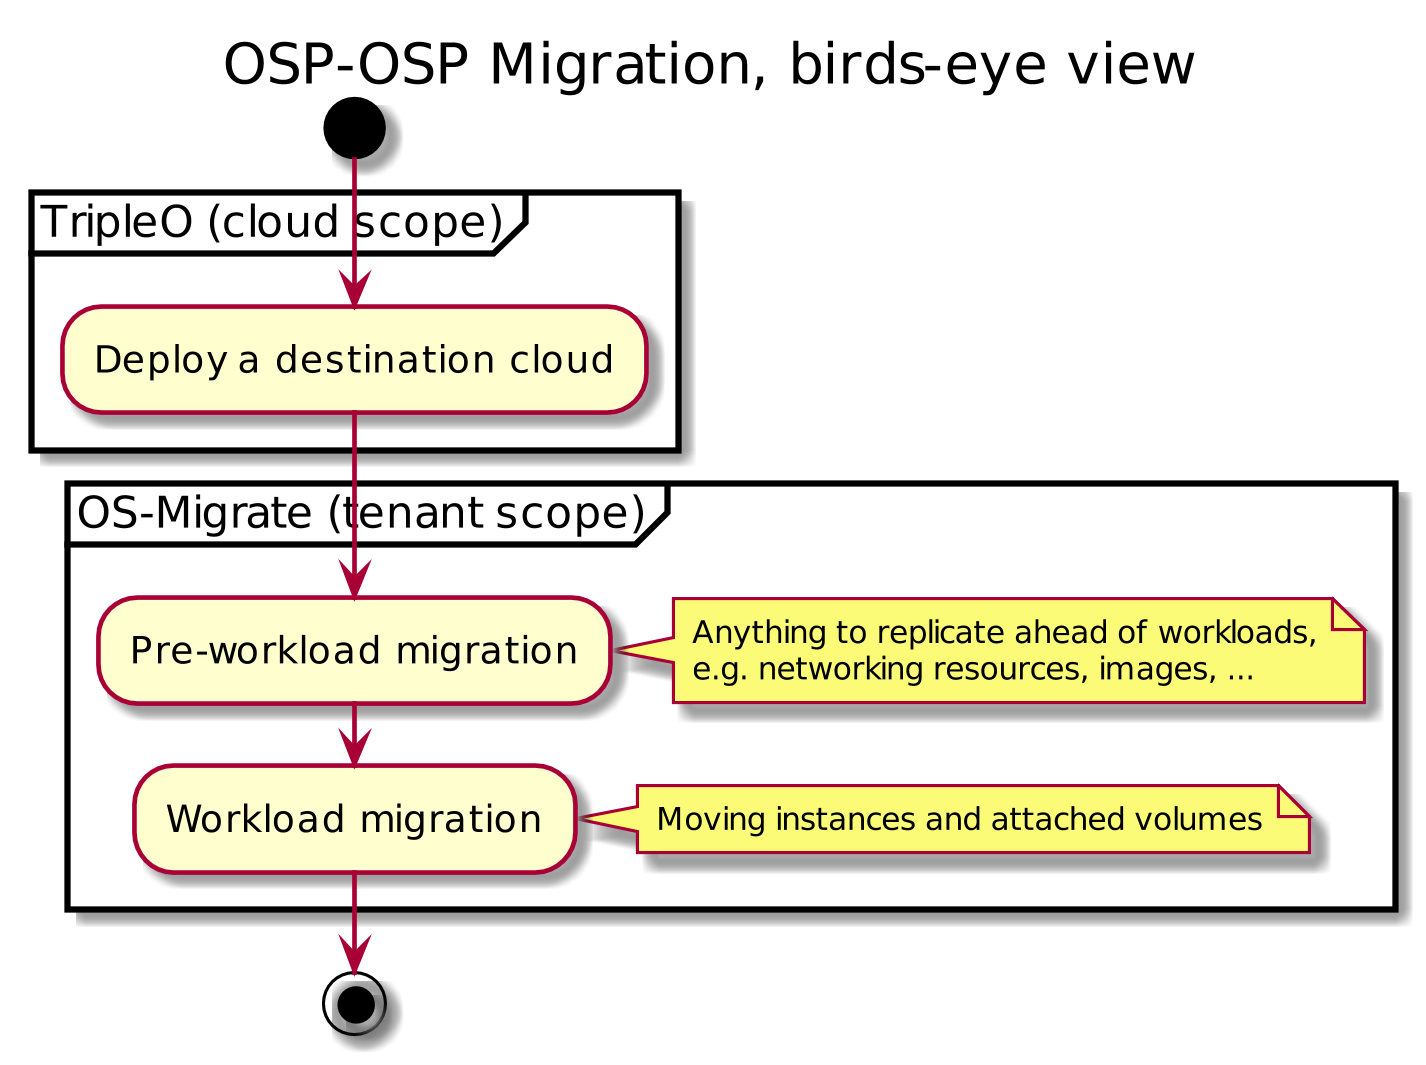 OSP-OSP Migration diagram, bird's eye view